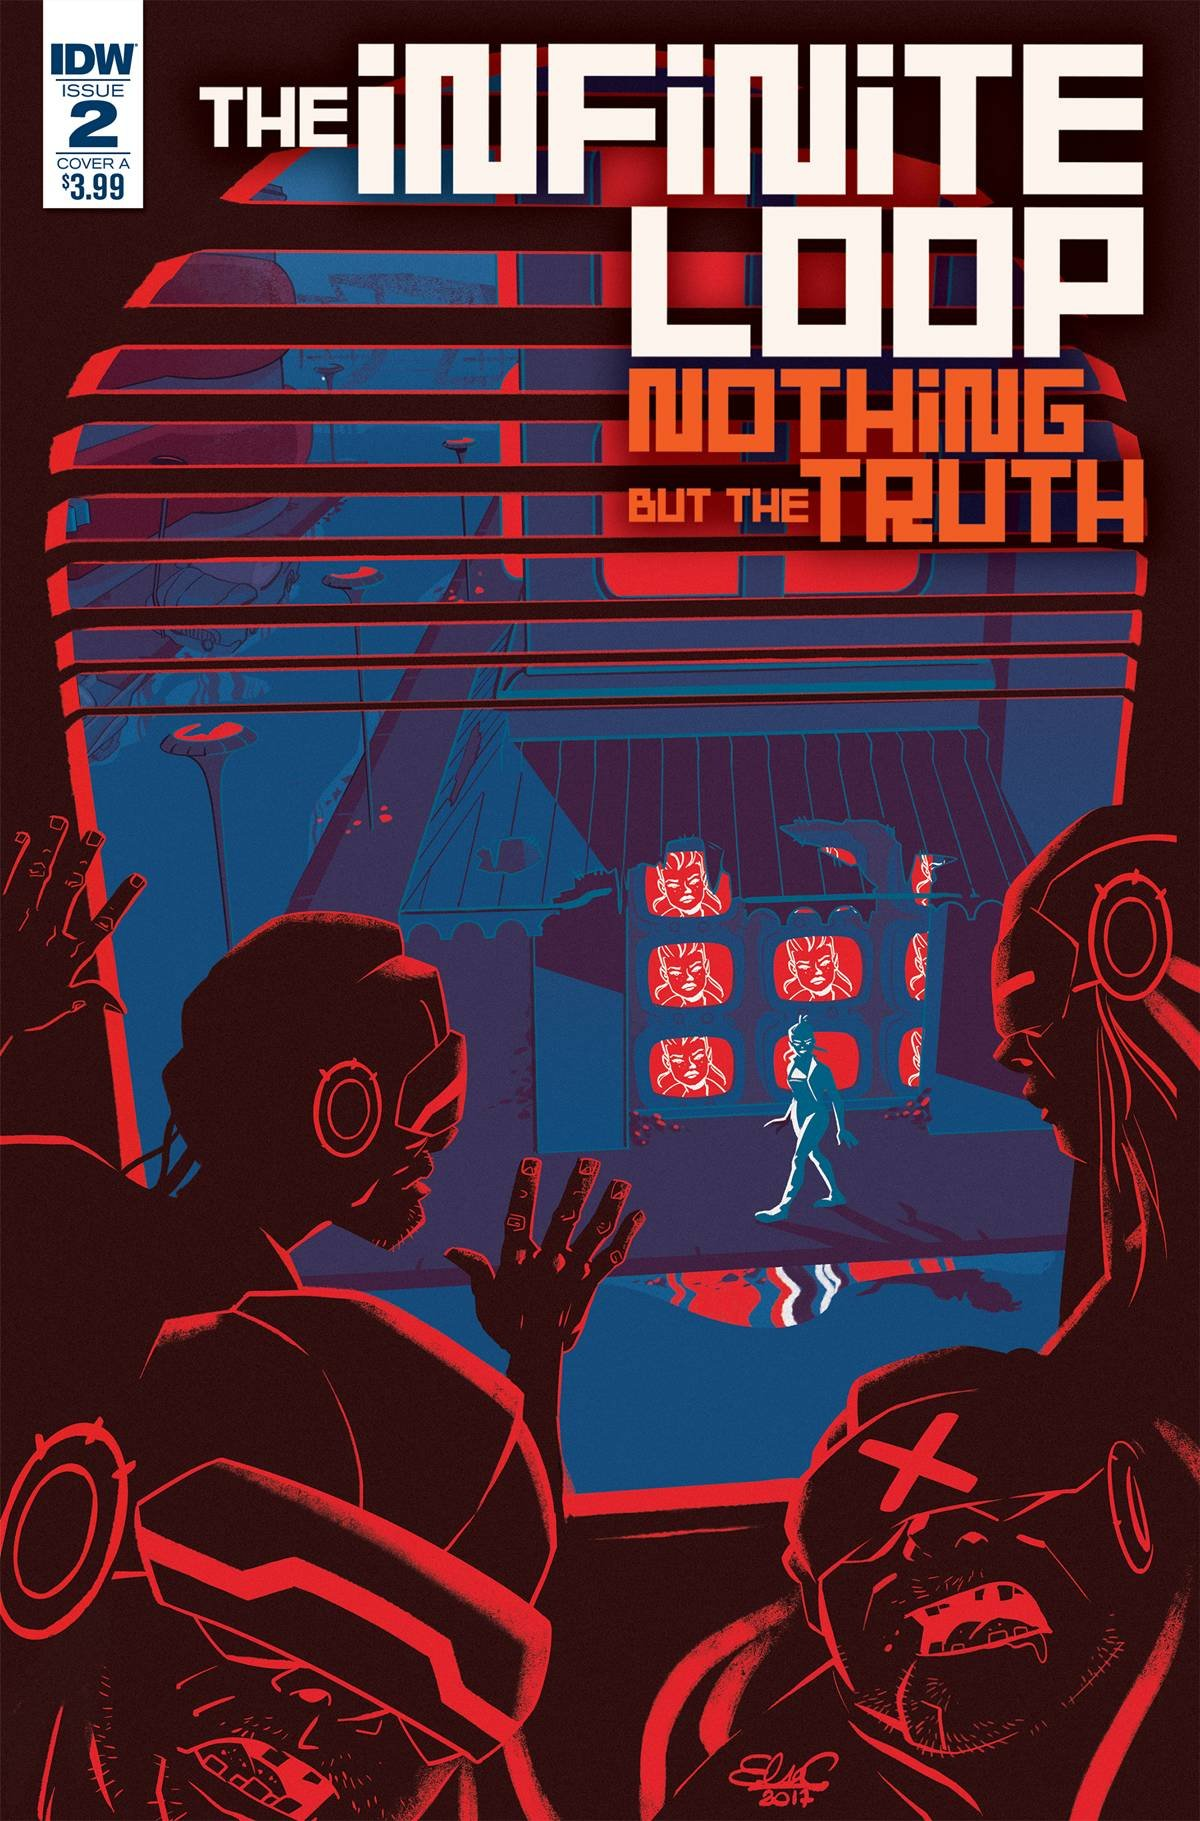 Read Online INFINITE LOOP NOTHING BUT THE TRUTH #2 (OF 6) RELEASES 10/18/17 ebook